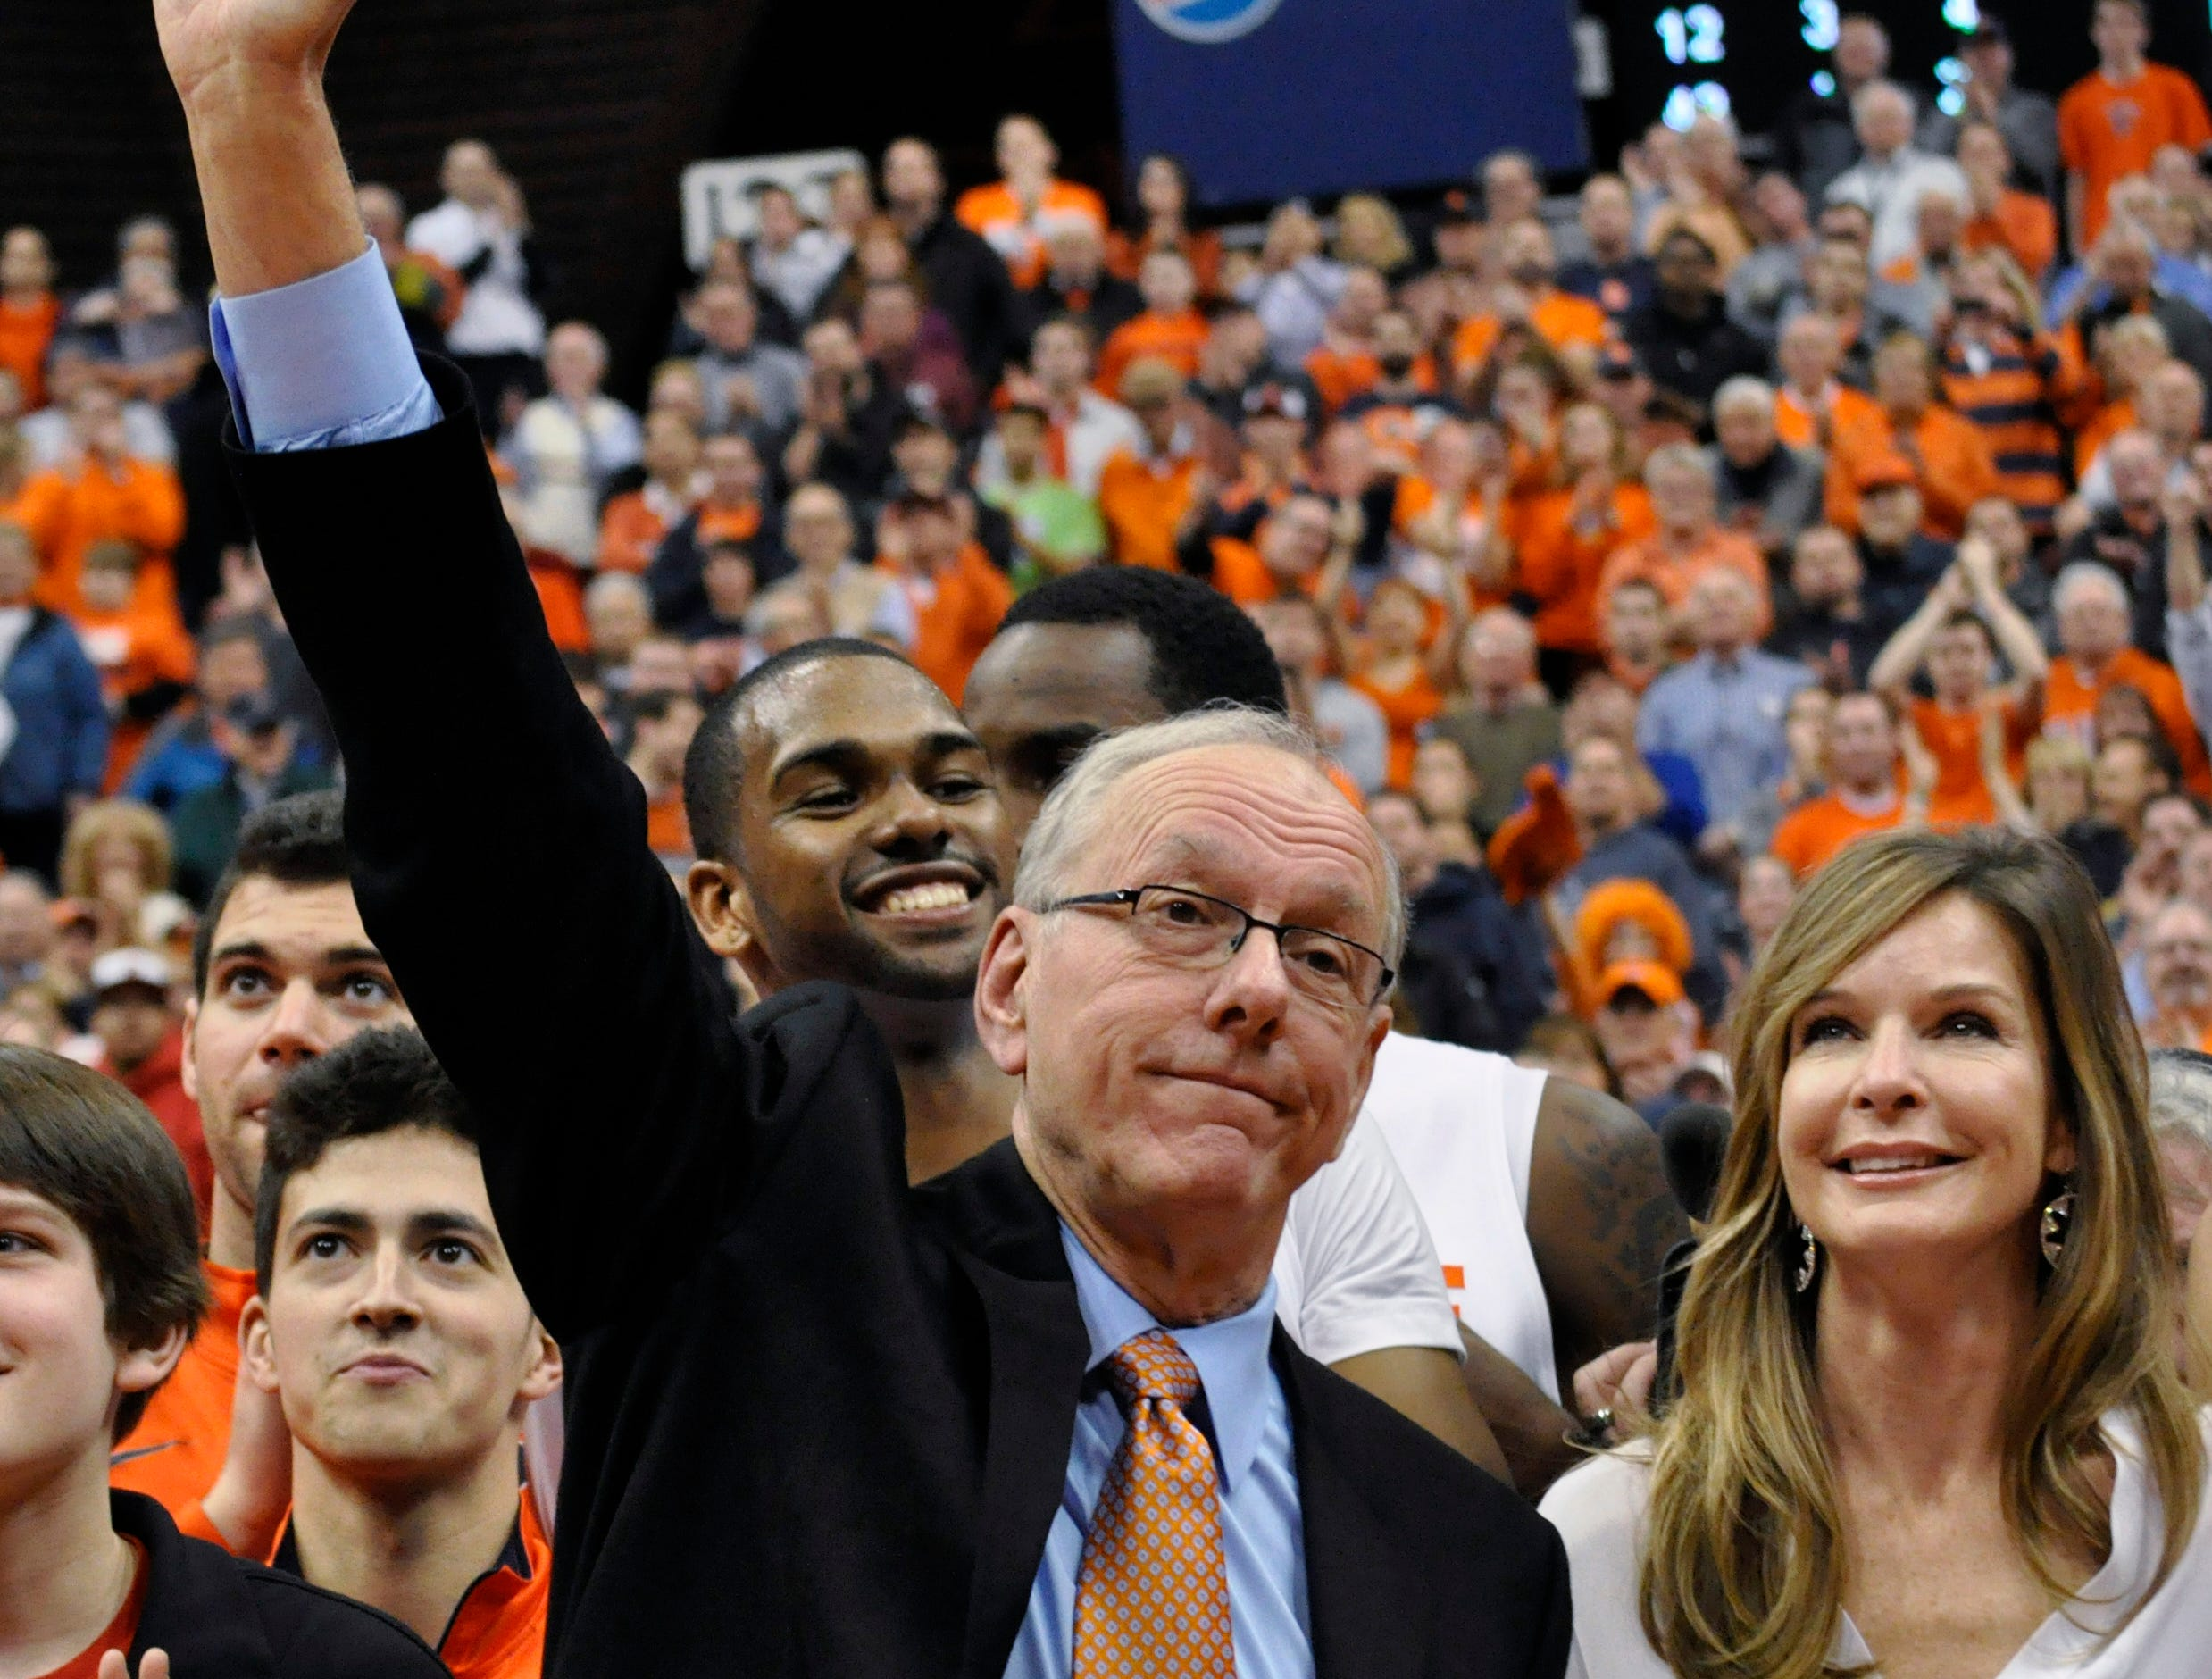 2012: Syracuse coach Jim Boeheim, standing next to his wife, Julie, waves to the crowd after his 900th win, in Syracuse's 72-68 victory over Detroit in an NCAA college basketball game in Syracuse, N.Y., Monday, Dec. 17, 2012. (AP Photo/Kevin Rivoli)